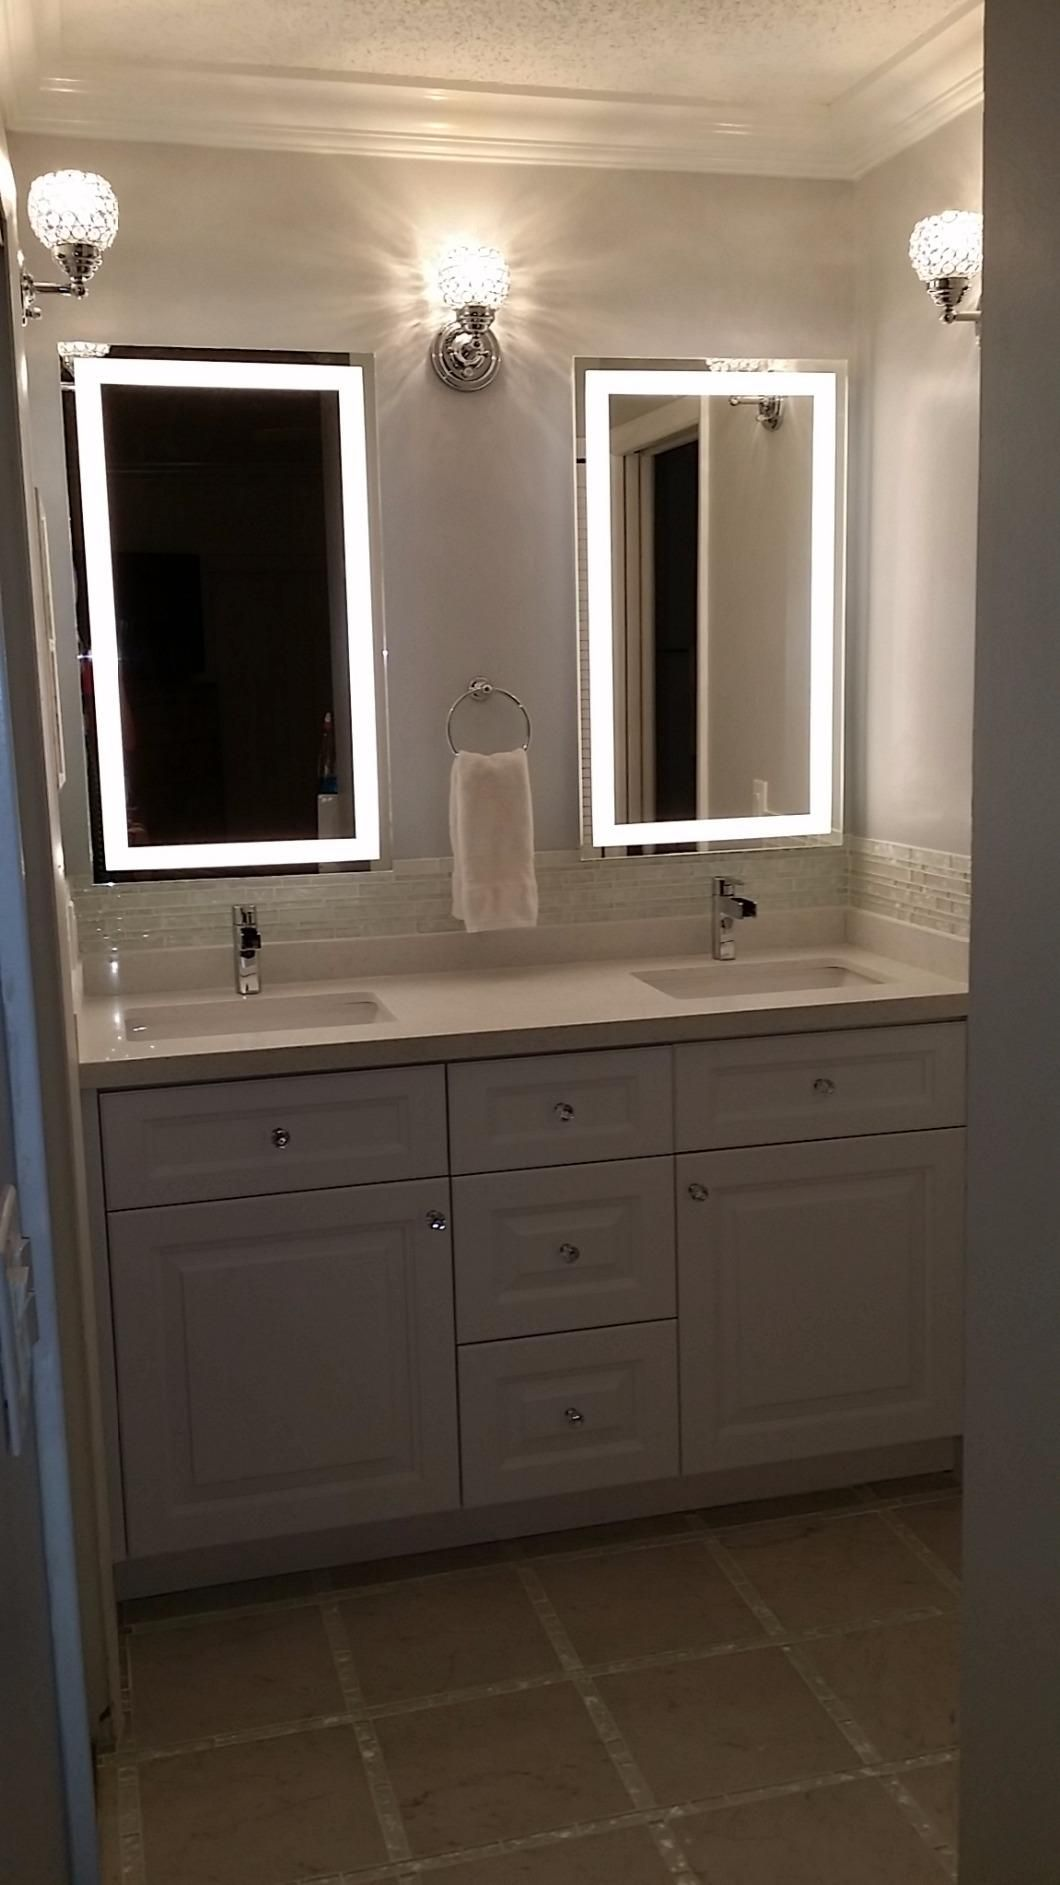 adorable large rectangular bathroom mirror. 100 Awesome Bathroom Mirror Ideas You Should Have Already  Dlingoo Pin by Peter Lewis on LED Pinterest plates Light led